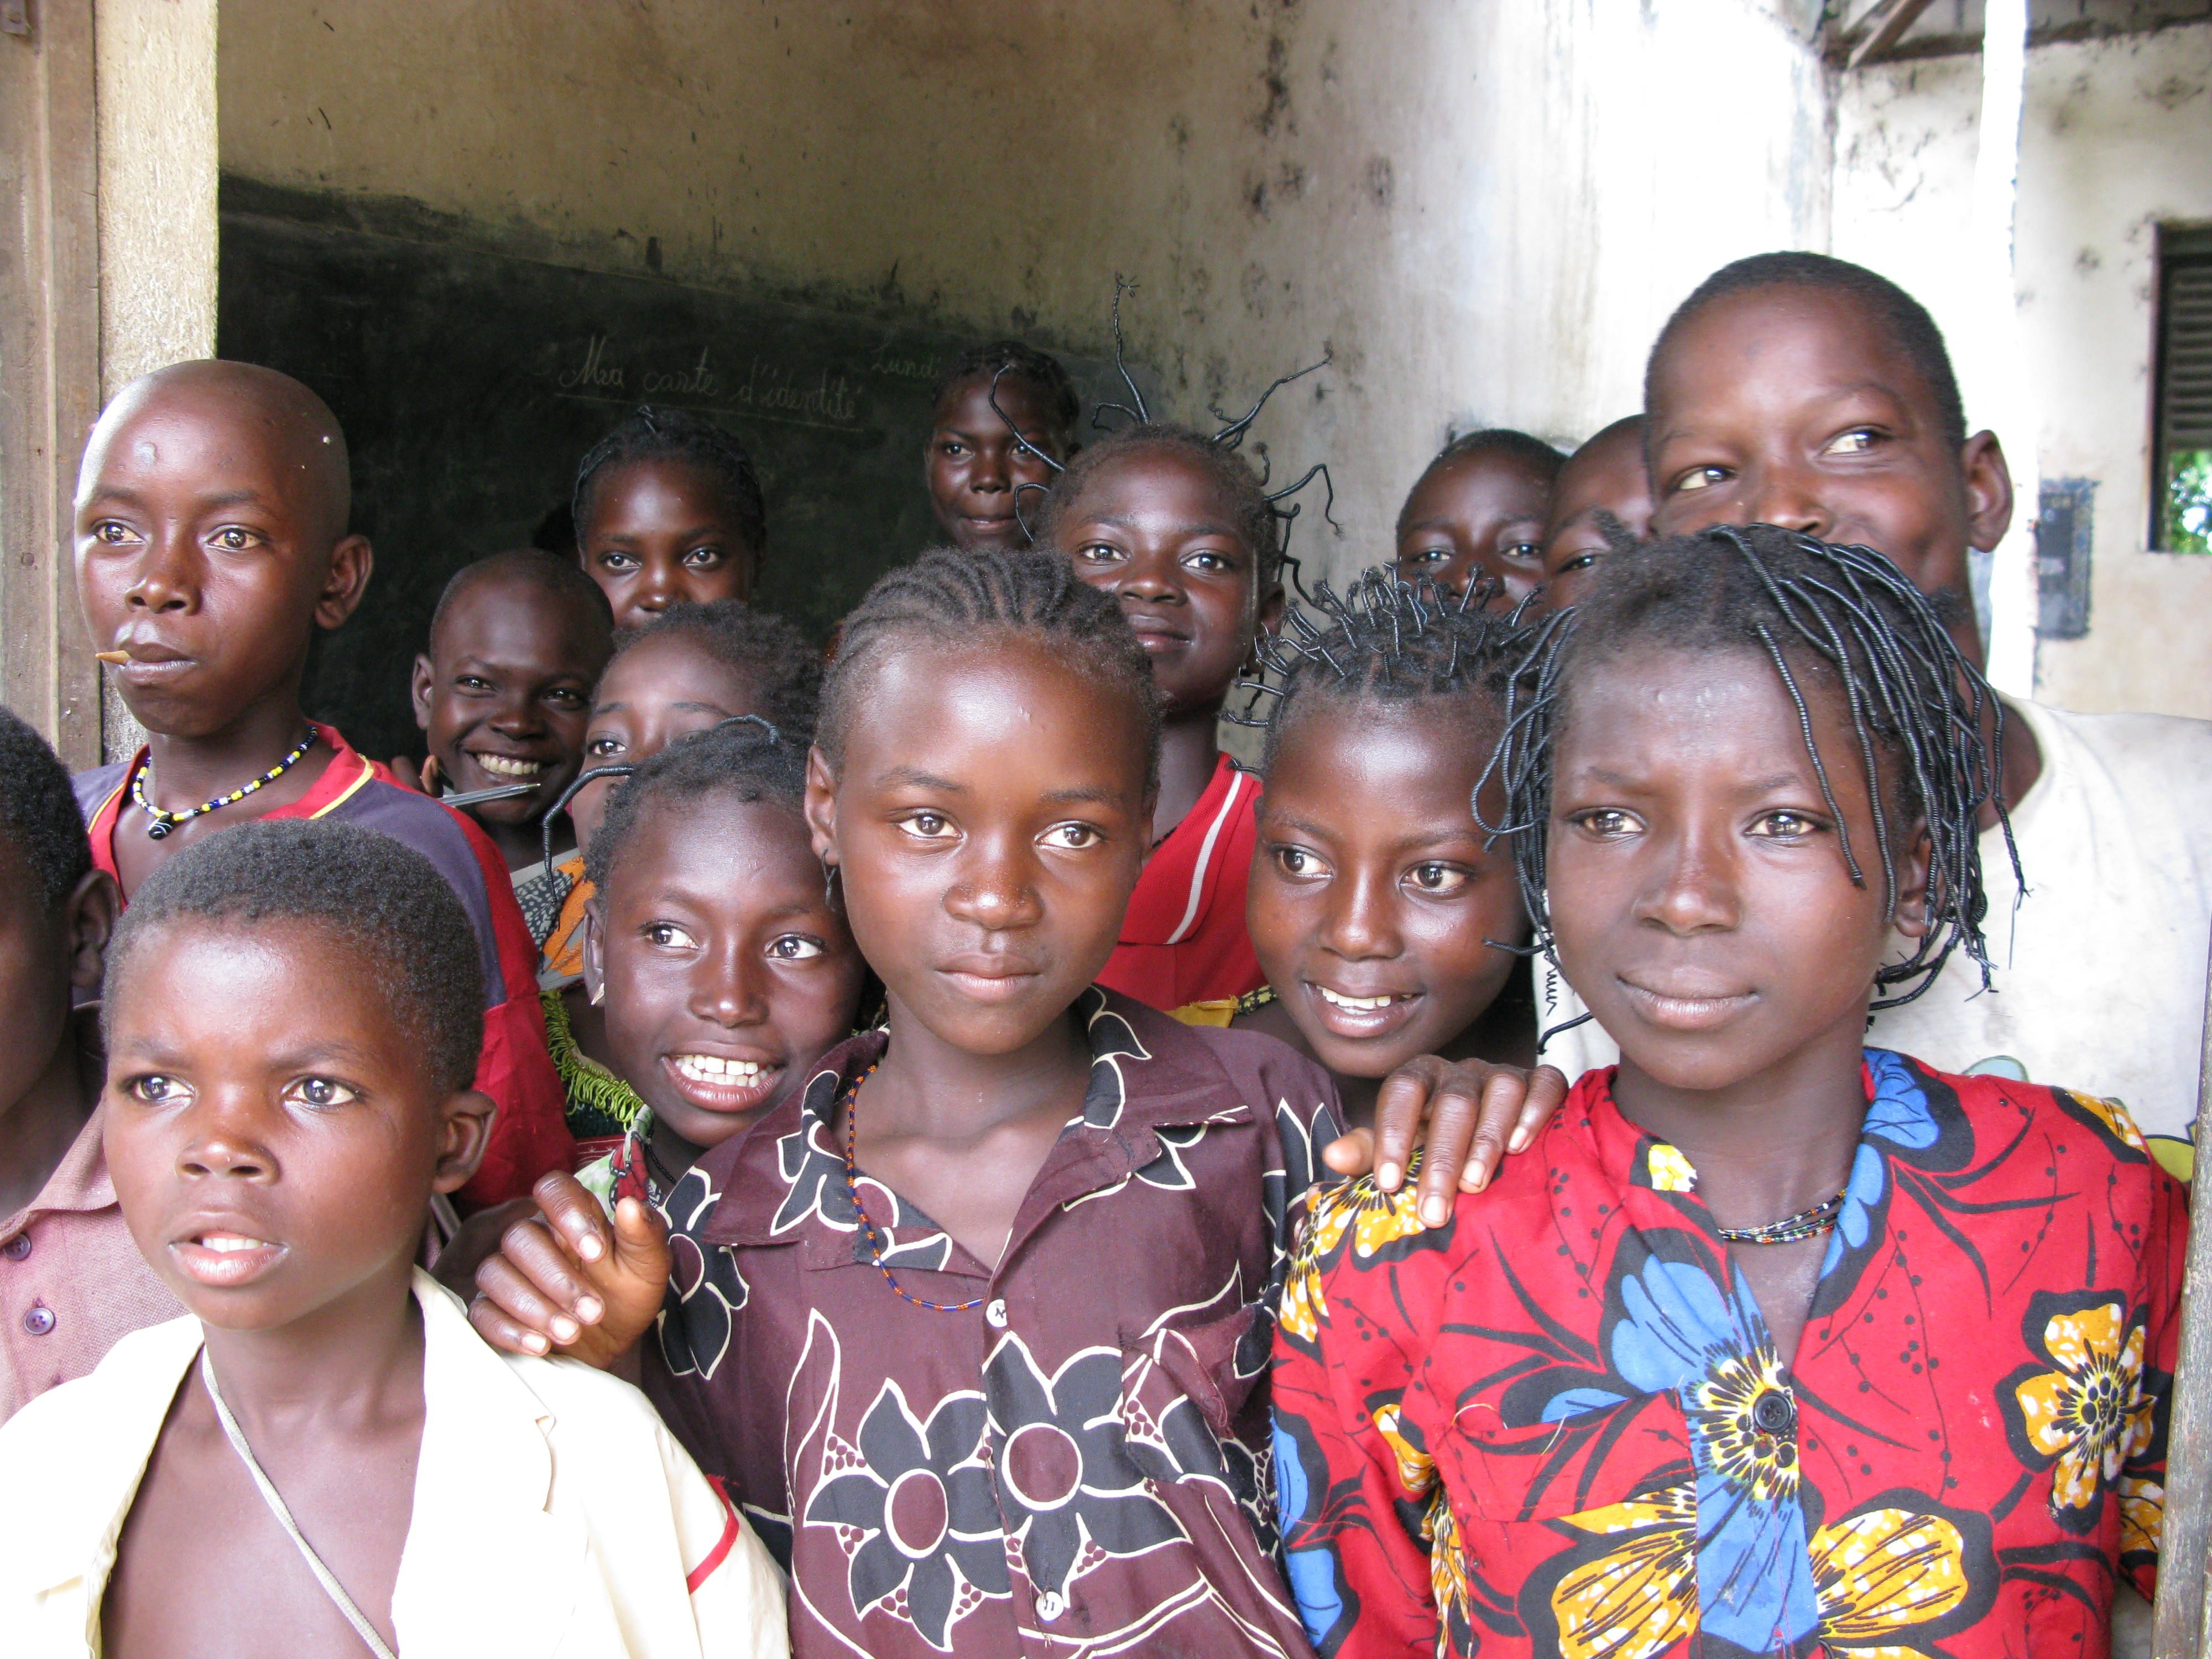 Childen gather outside a school in the Central African Republic